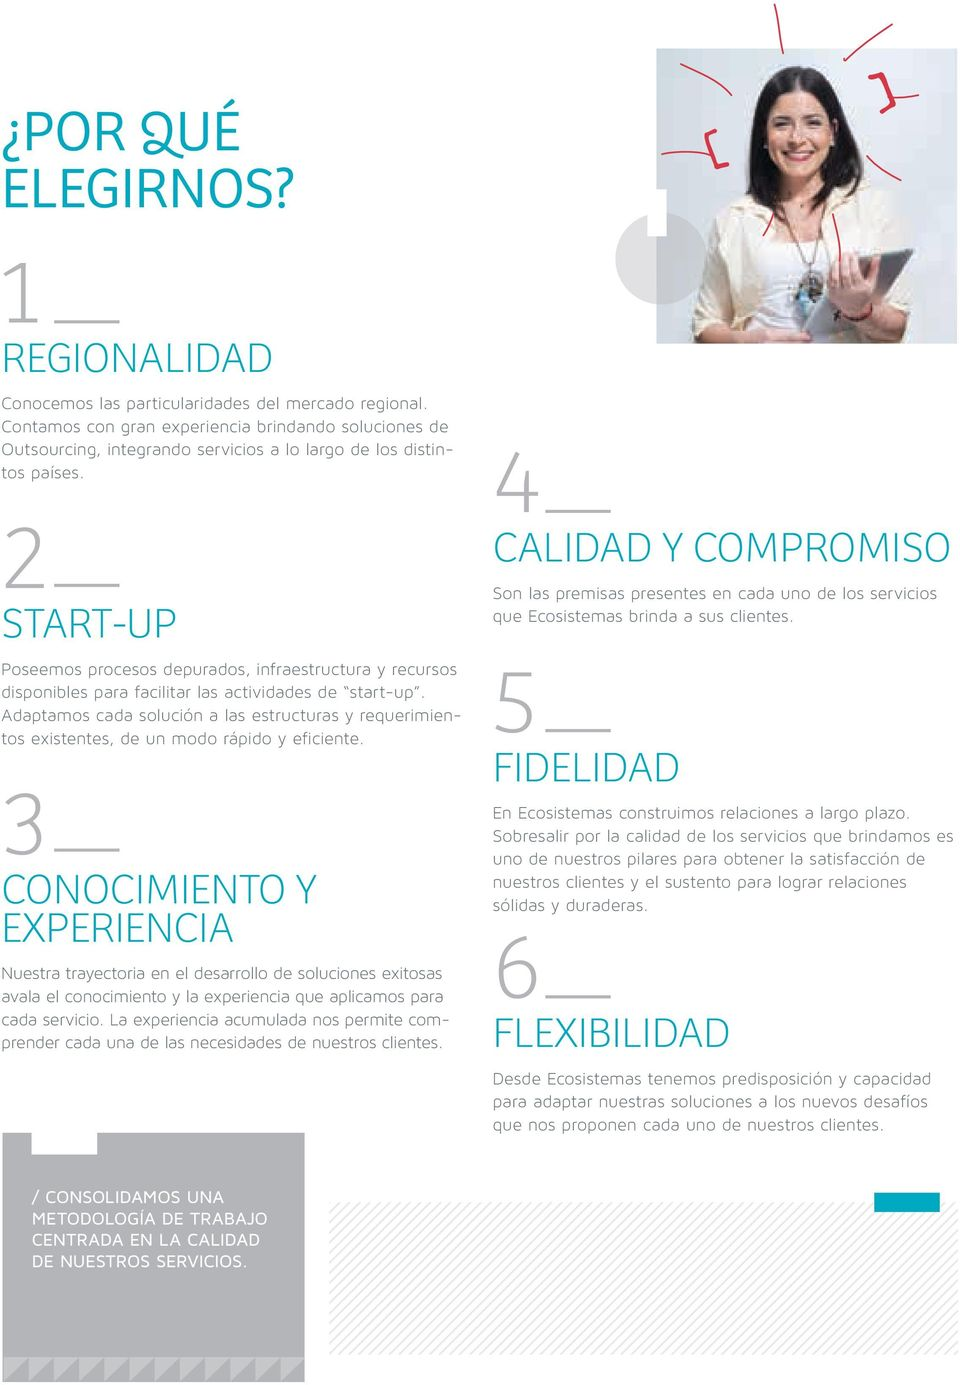 2 START-UP Poseemos procesos depurados, infraestructura y recursos disponibles para facilitar las actividades de start-up.